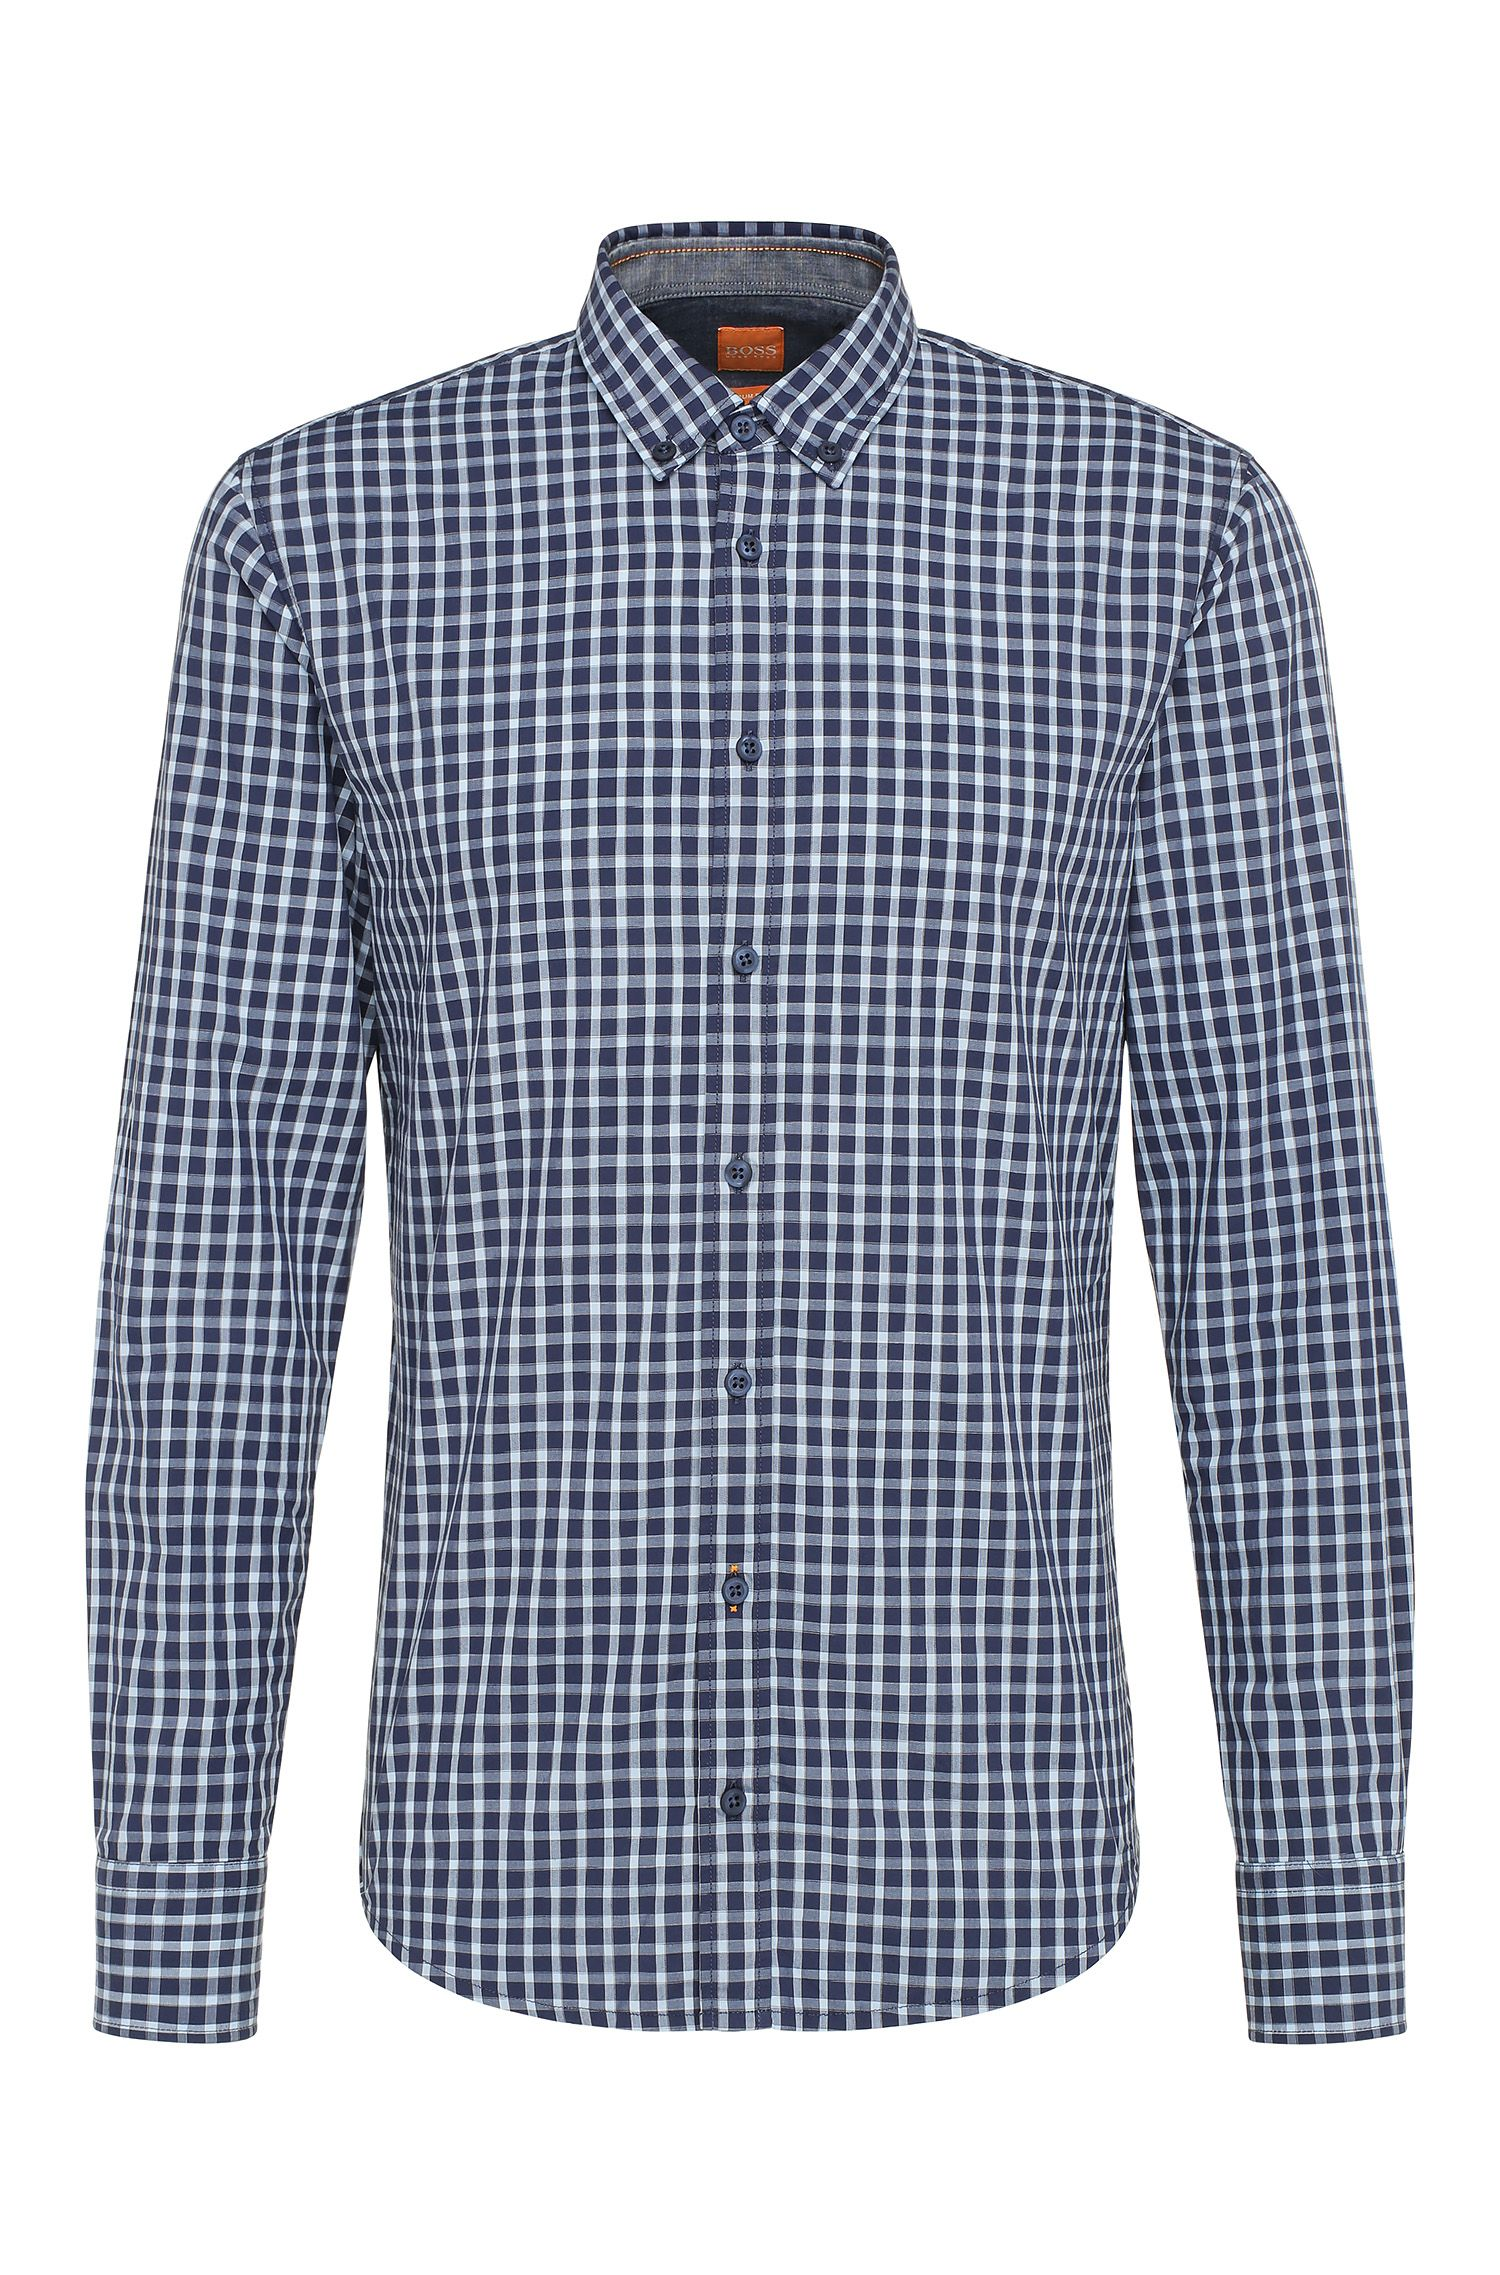 'EdipoE' | Slim Fit, Cotton Plaid Button Down Shirt